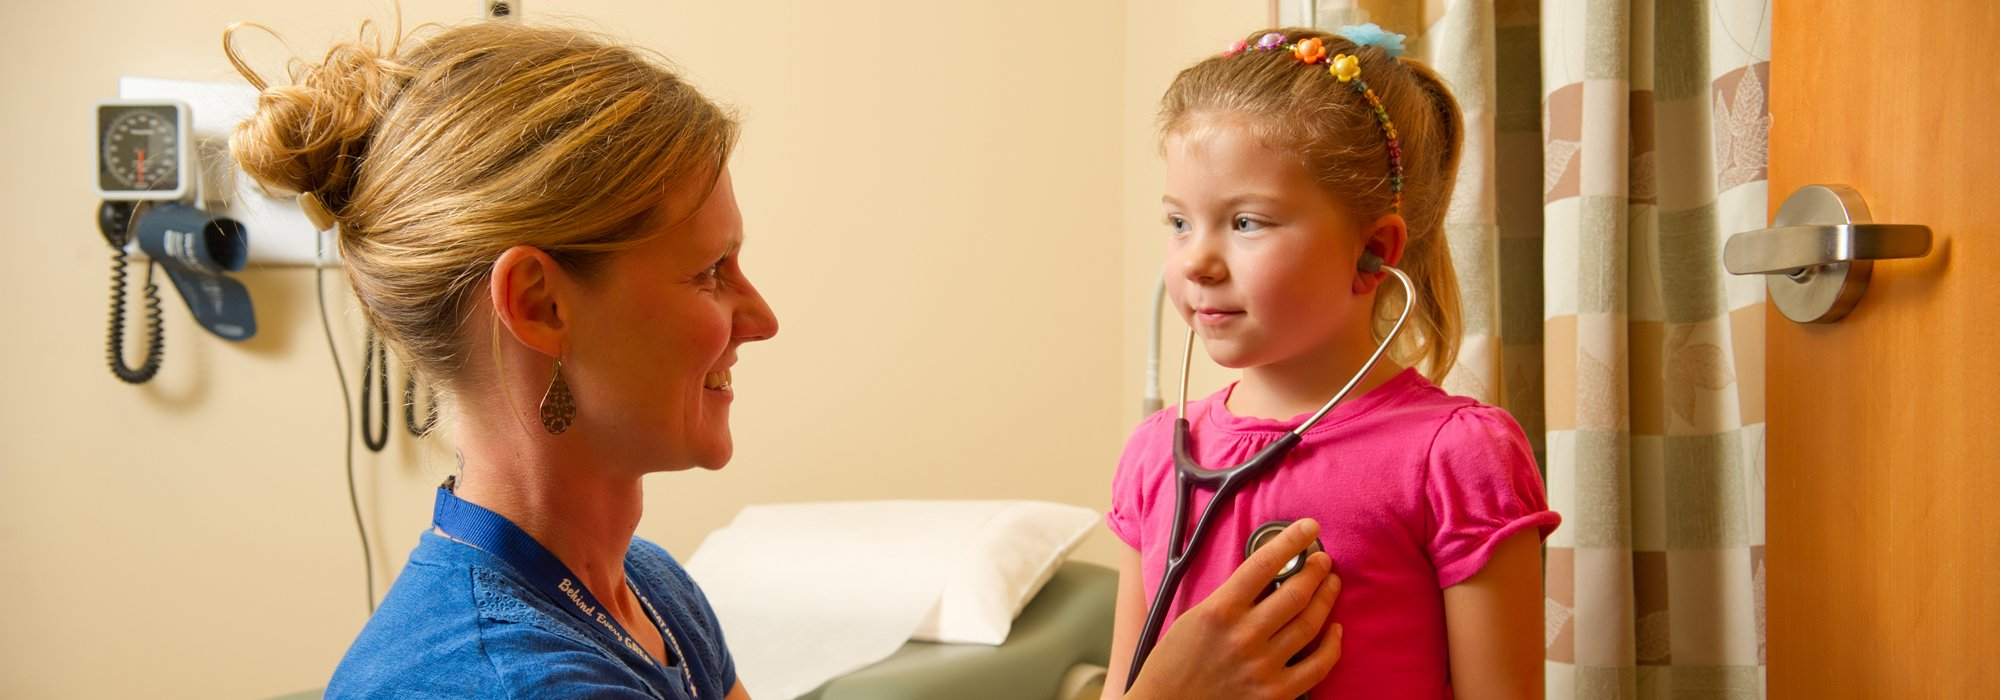 Carrie Kingsley, ARNP, checks the heartbeat of a pediatric patient.